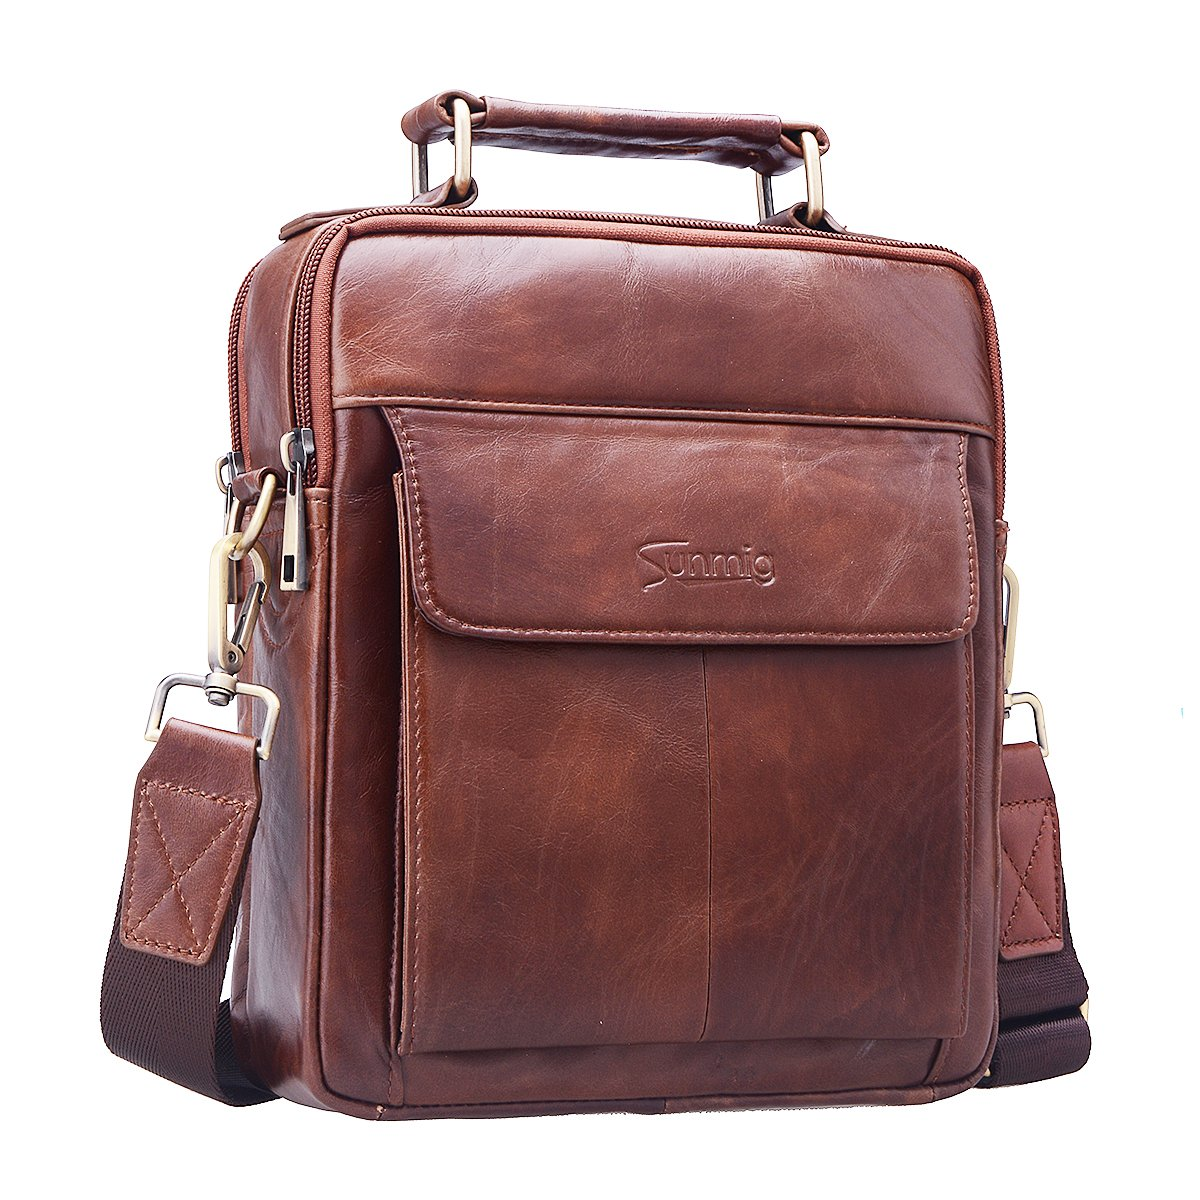 Sunmig Men's Genuine Leather Shoulder Bag Messenger Briefcase CrossBody Handbag (Brown) by Sunmig (Image #4)